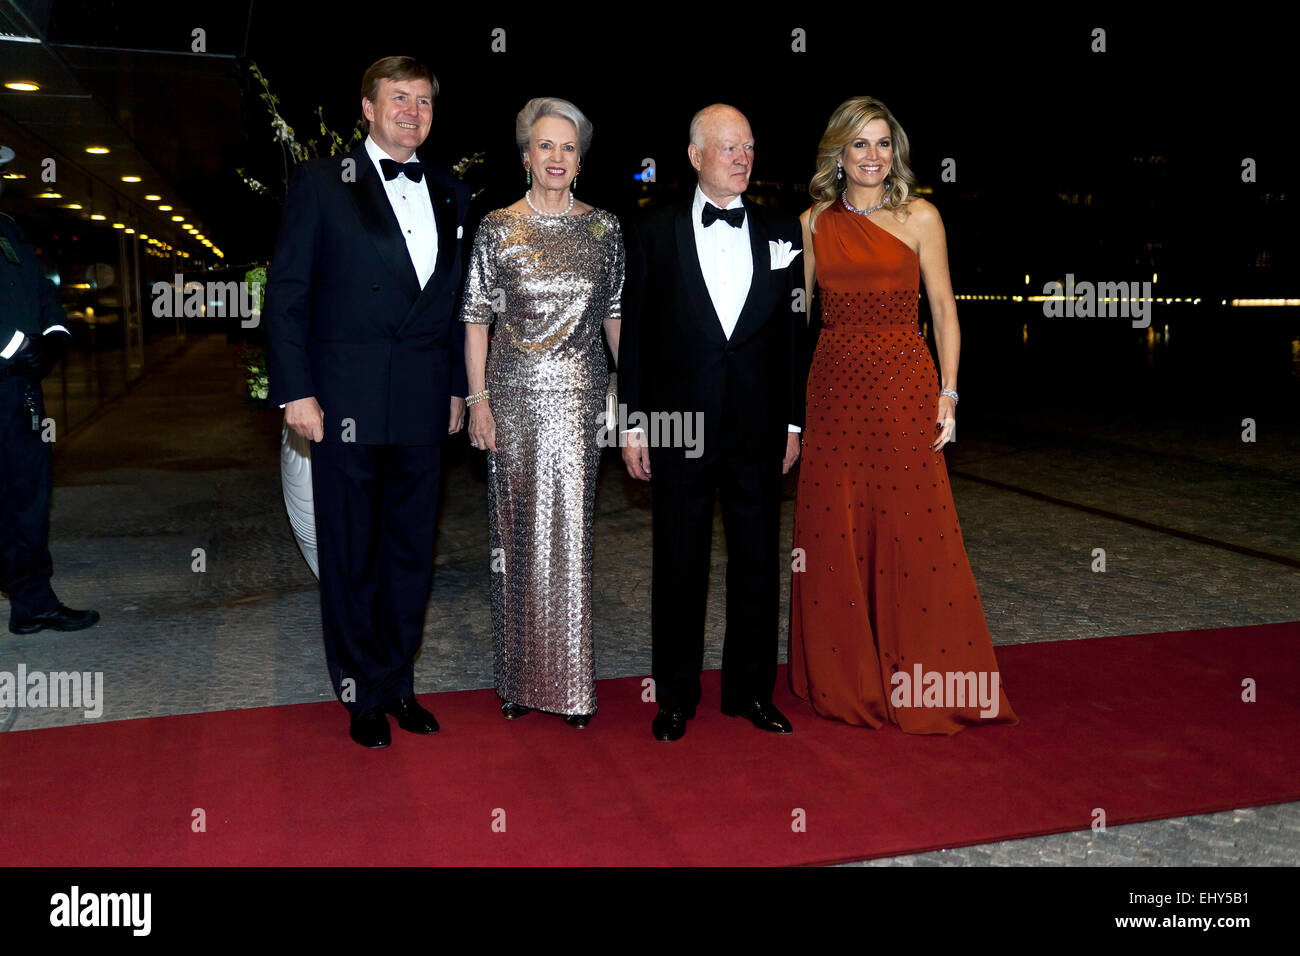 Copenhagen, Denmark. 18th March, 2015. Dutch King Willem-Alexander (left) and Queen Máxima (right) are posing - Stock Image